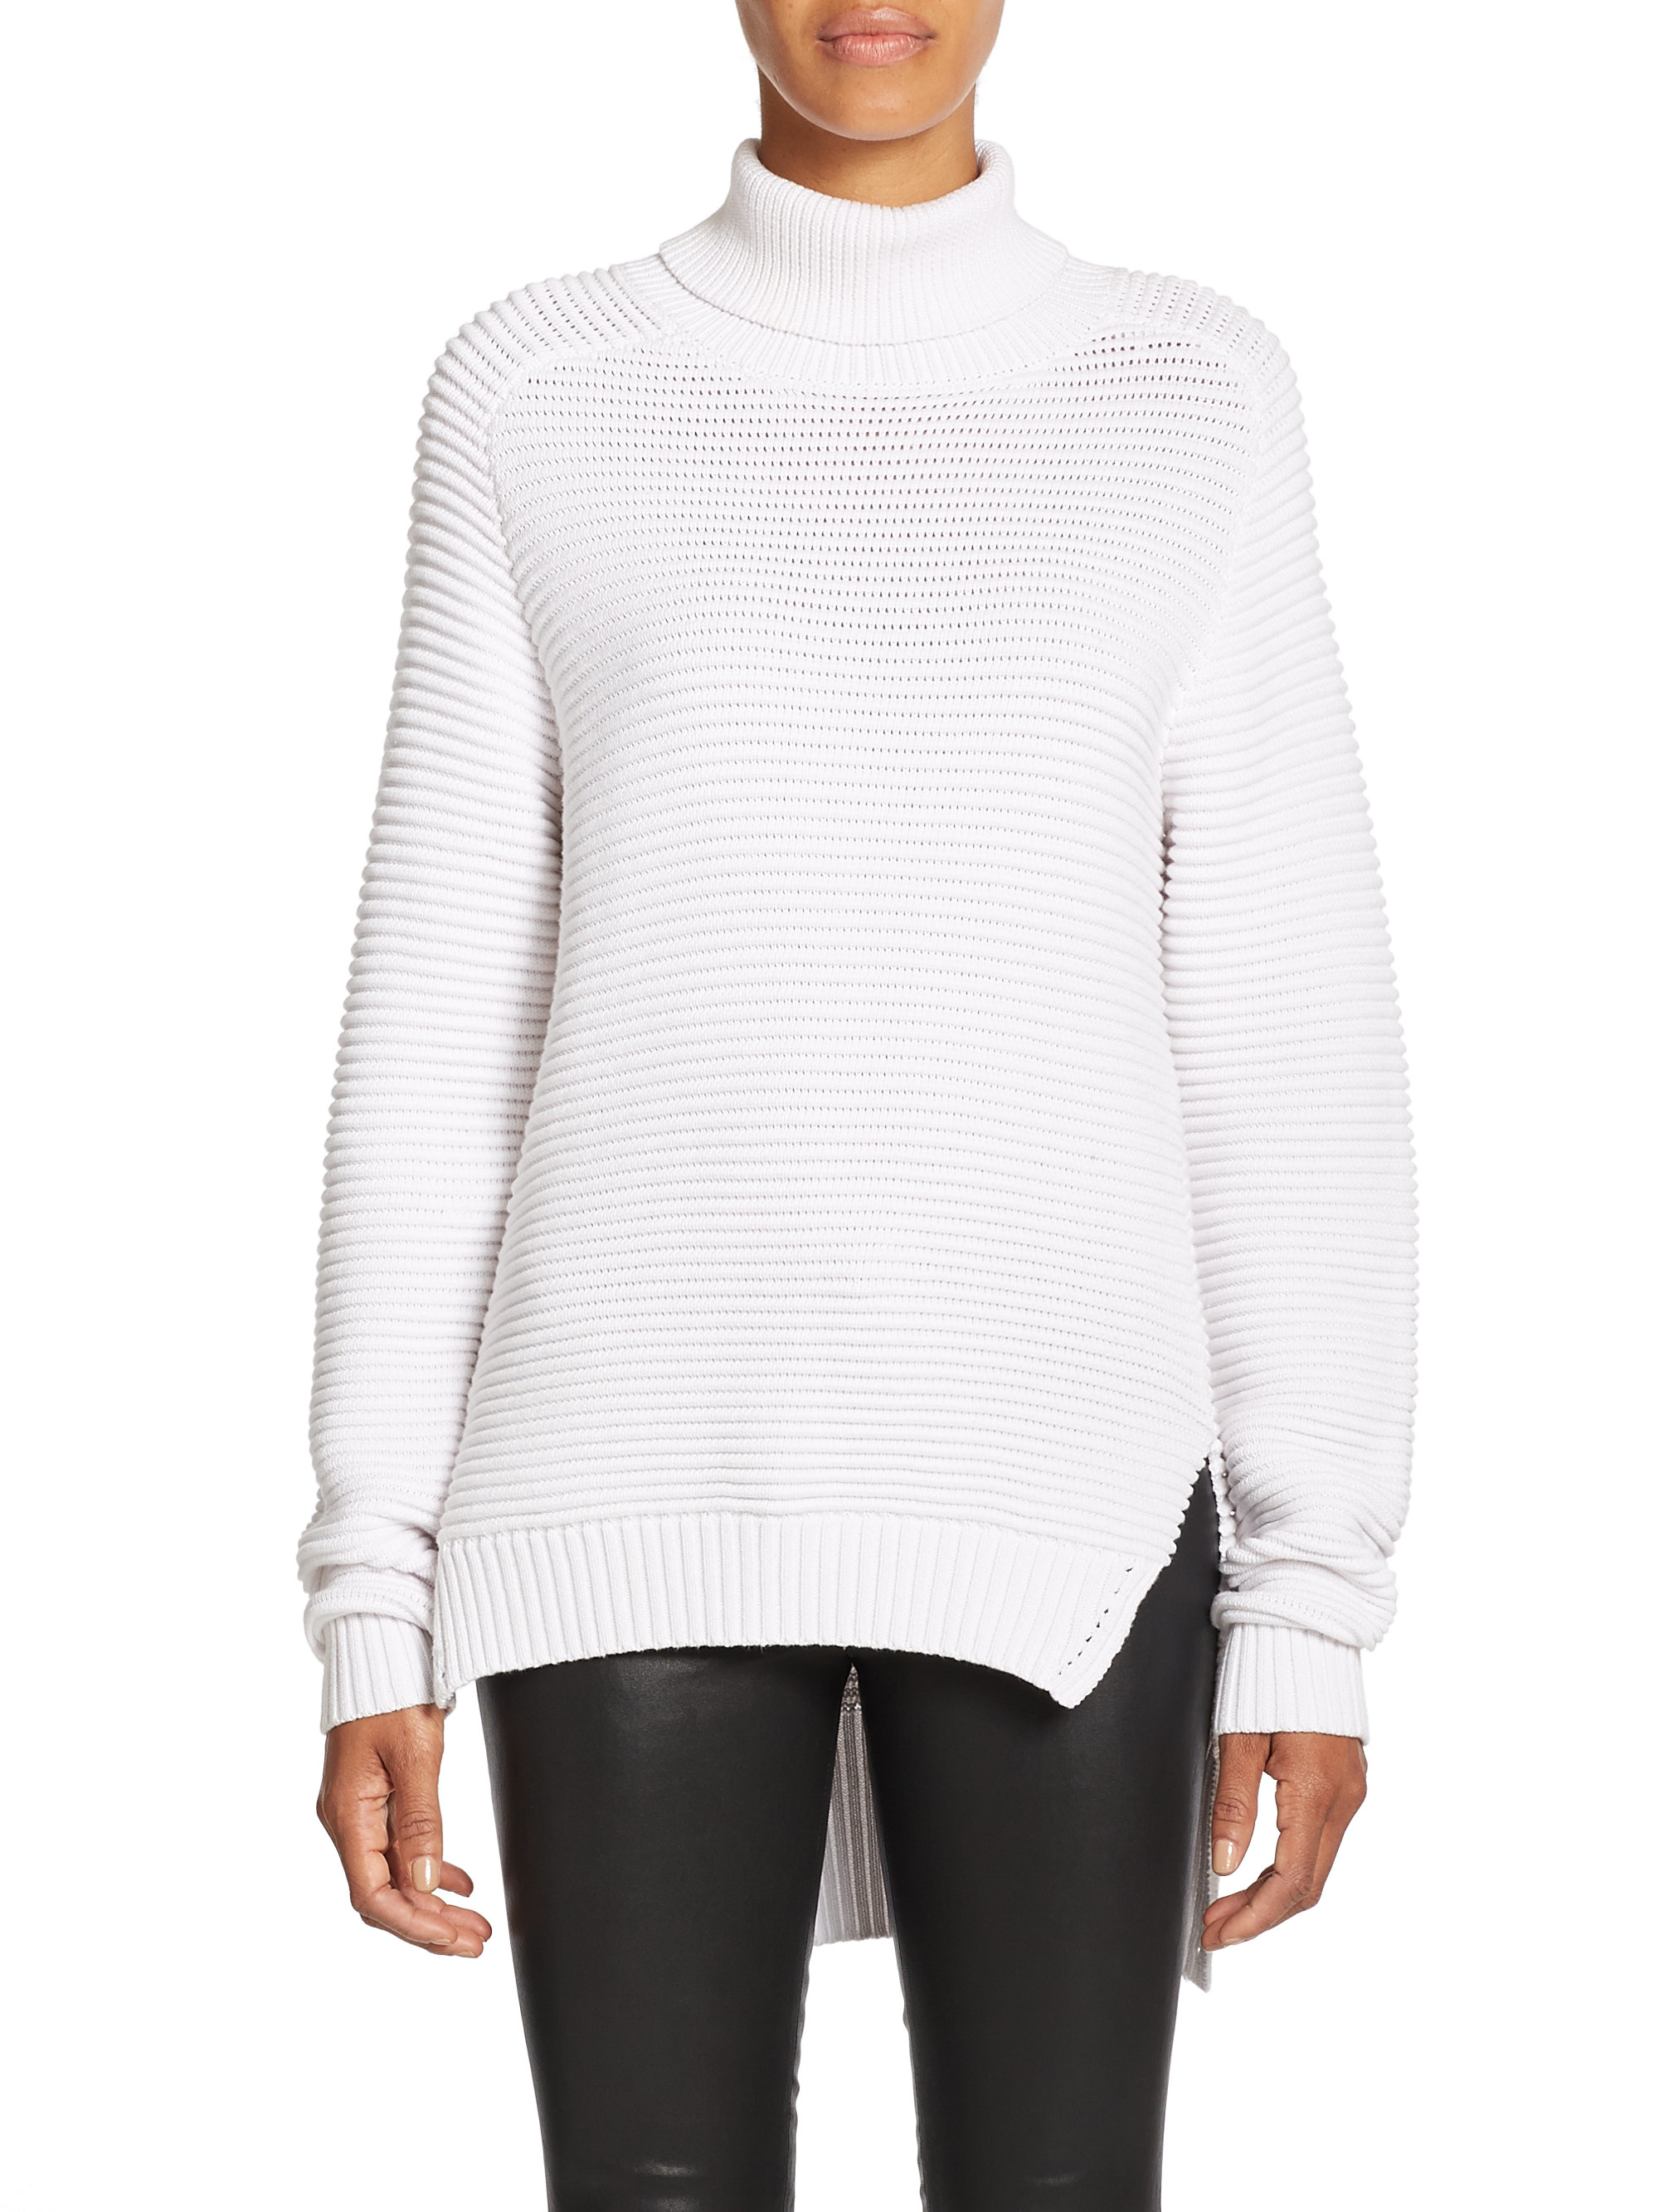 Nicholas N / Ribbed Cotton Turtleneck Sweater in White | Lyst